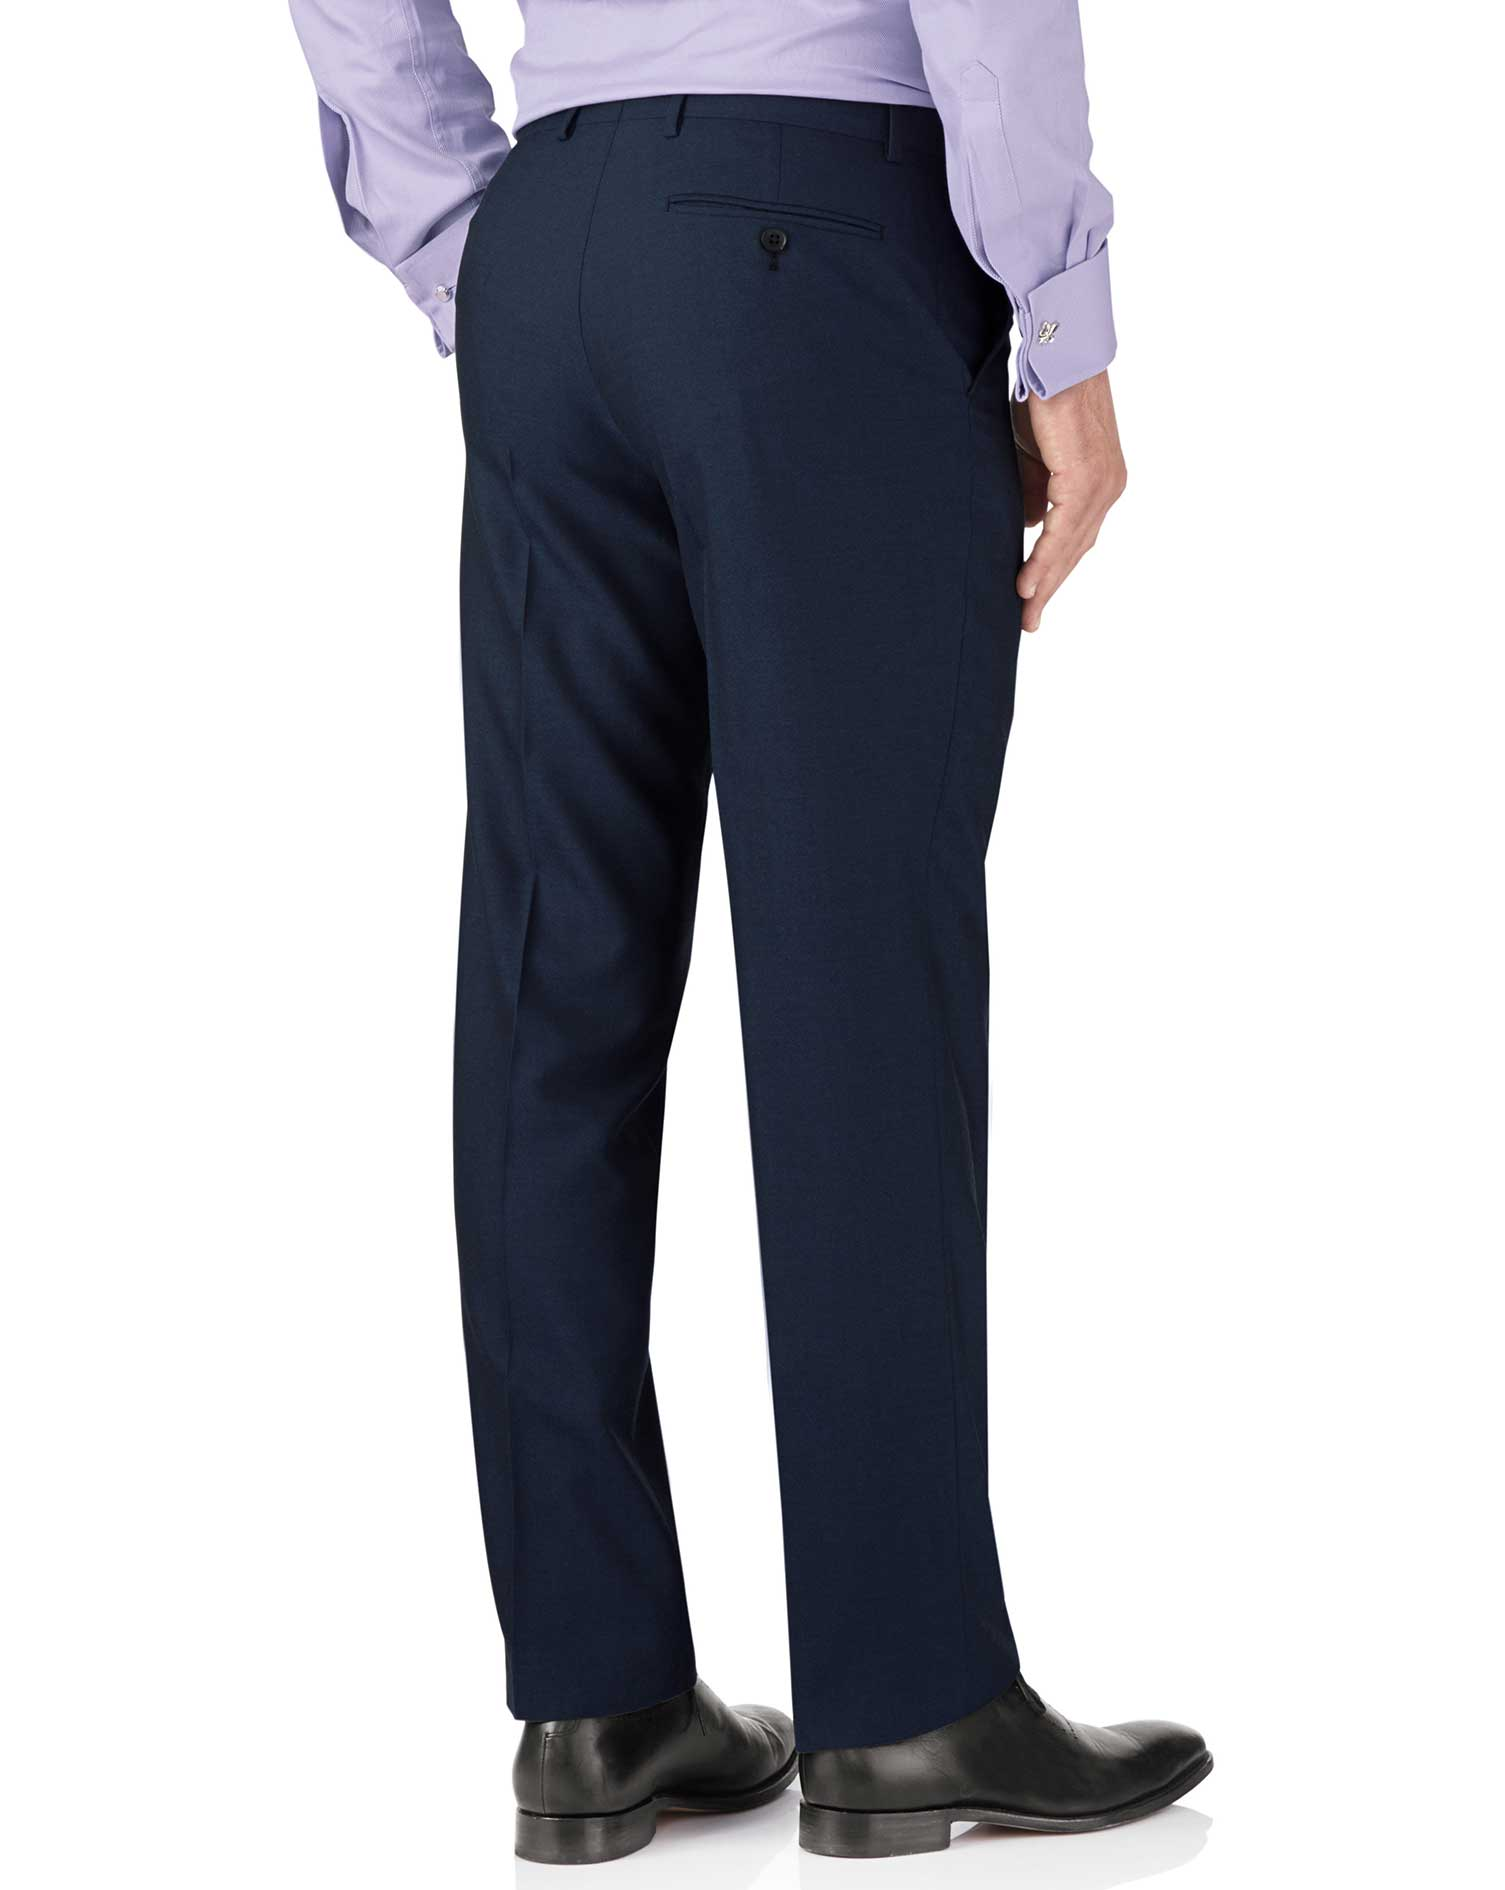 Blue slim fit British Panama luxury suit pants